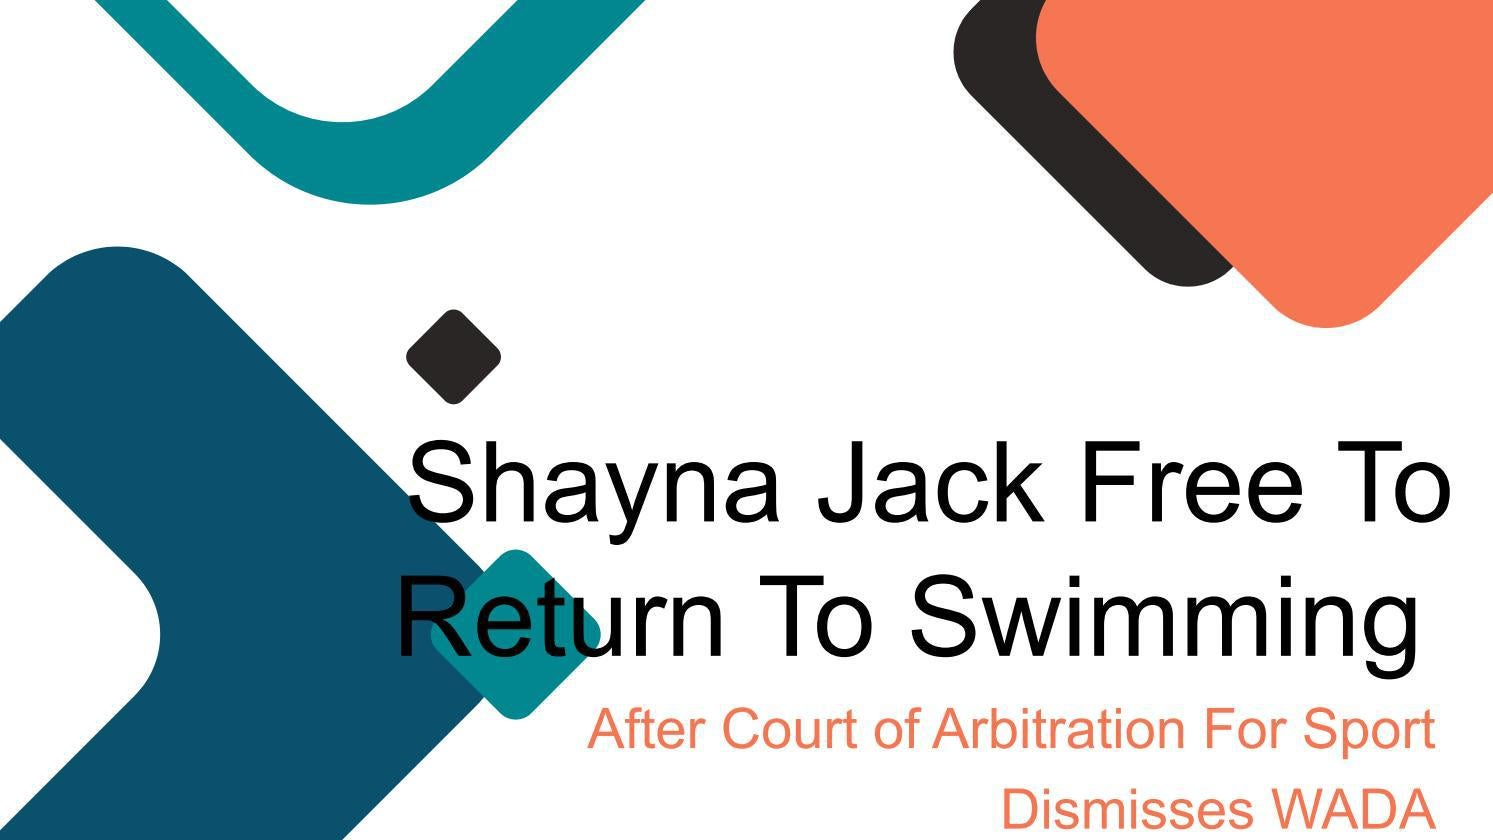 Nick Tsagaris | Shayna Jack Free To Return To Swimming After Court Of Arbitration For Sport